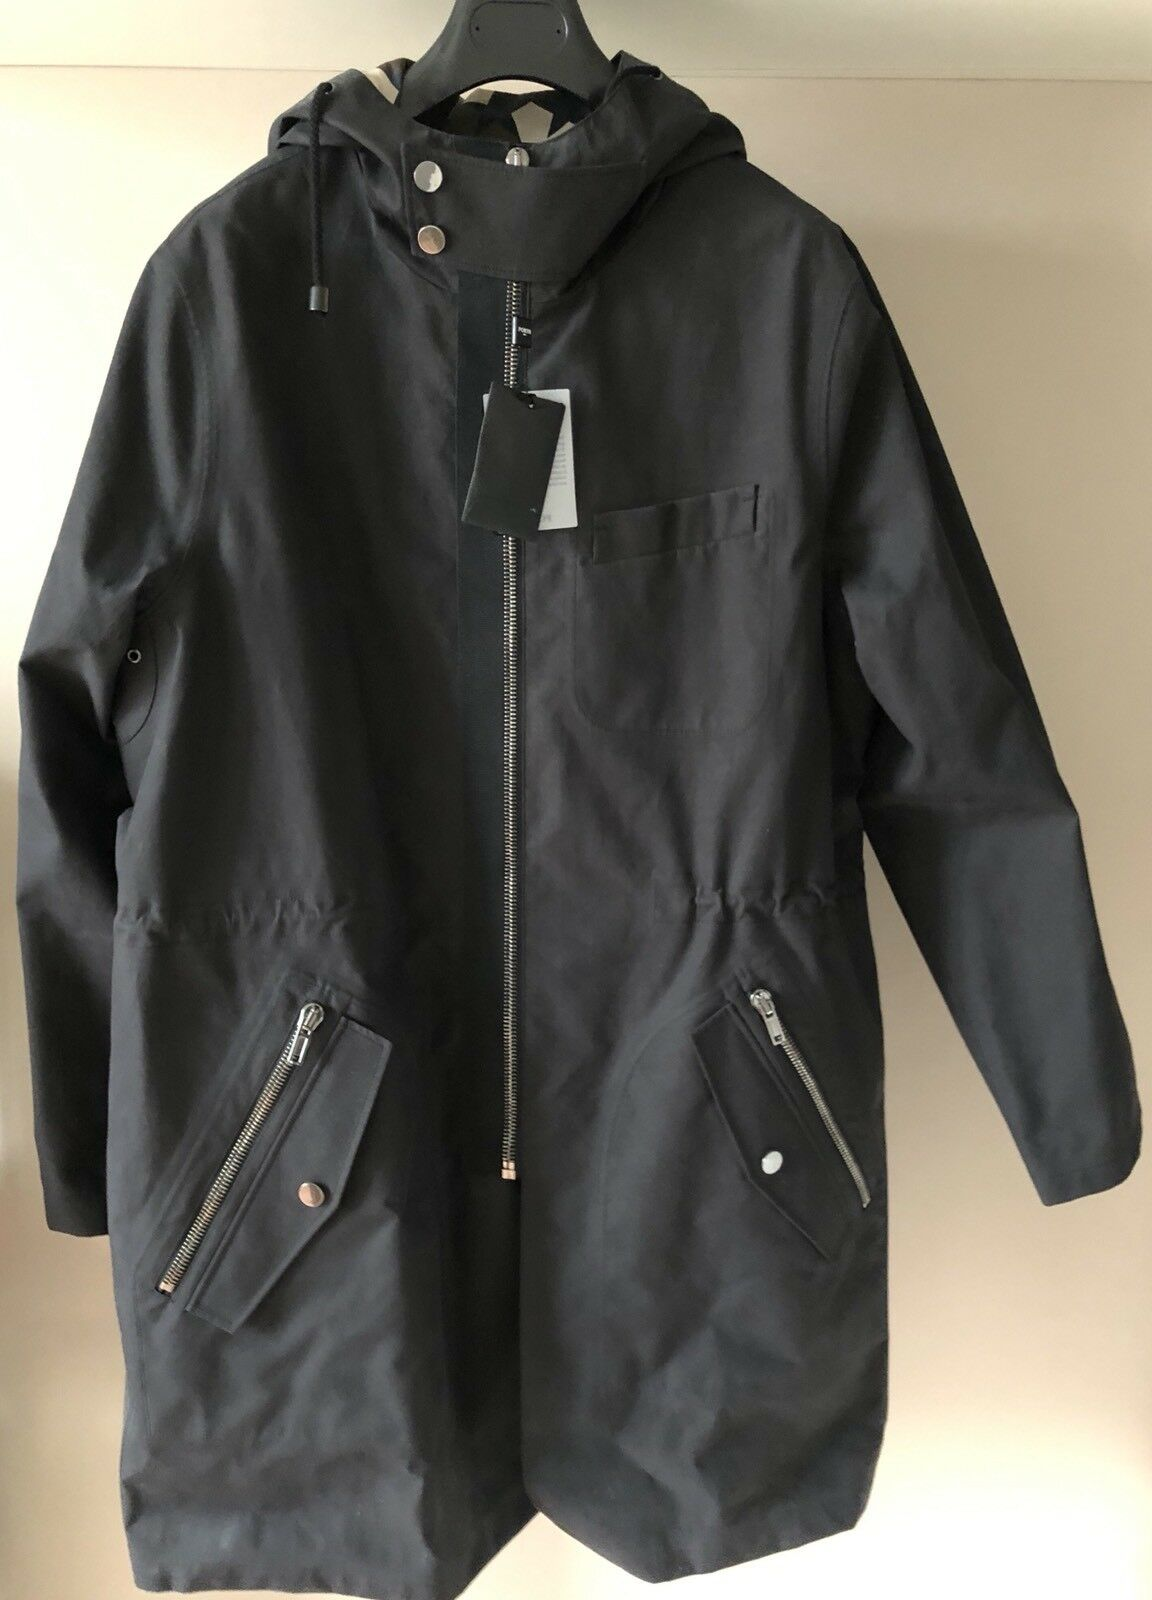 PORTS 1961 Waterproof COAT with HOOD, Breathable and fully seam sealed.STARSCAMO